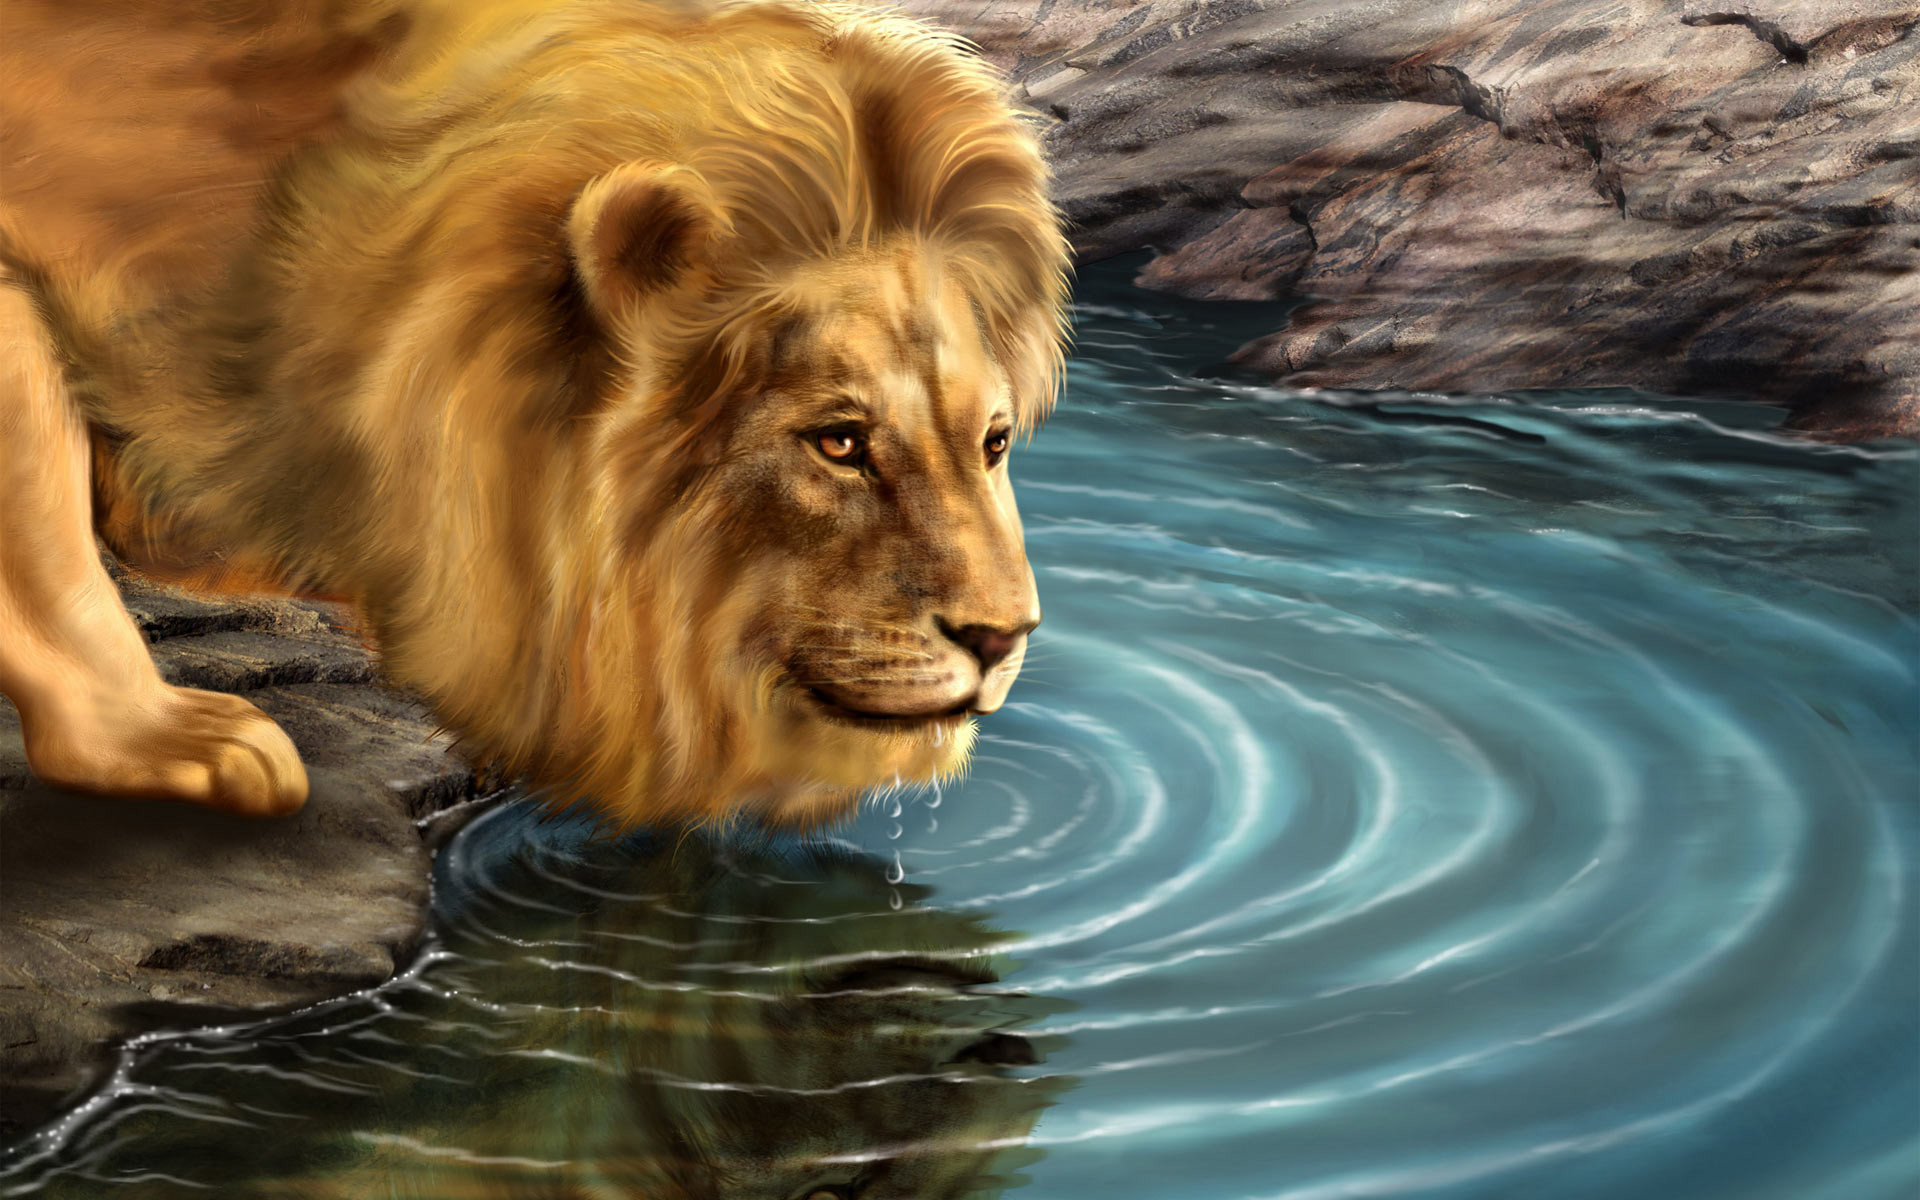 Abstract Lion Wallpapers HD Images